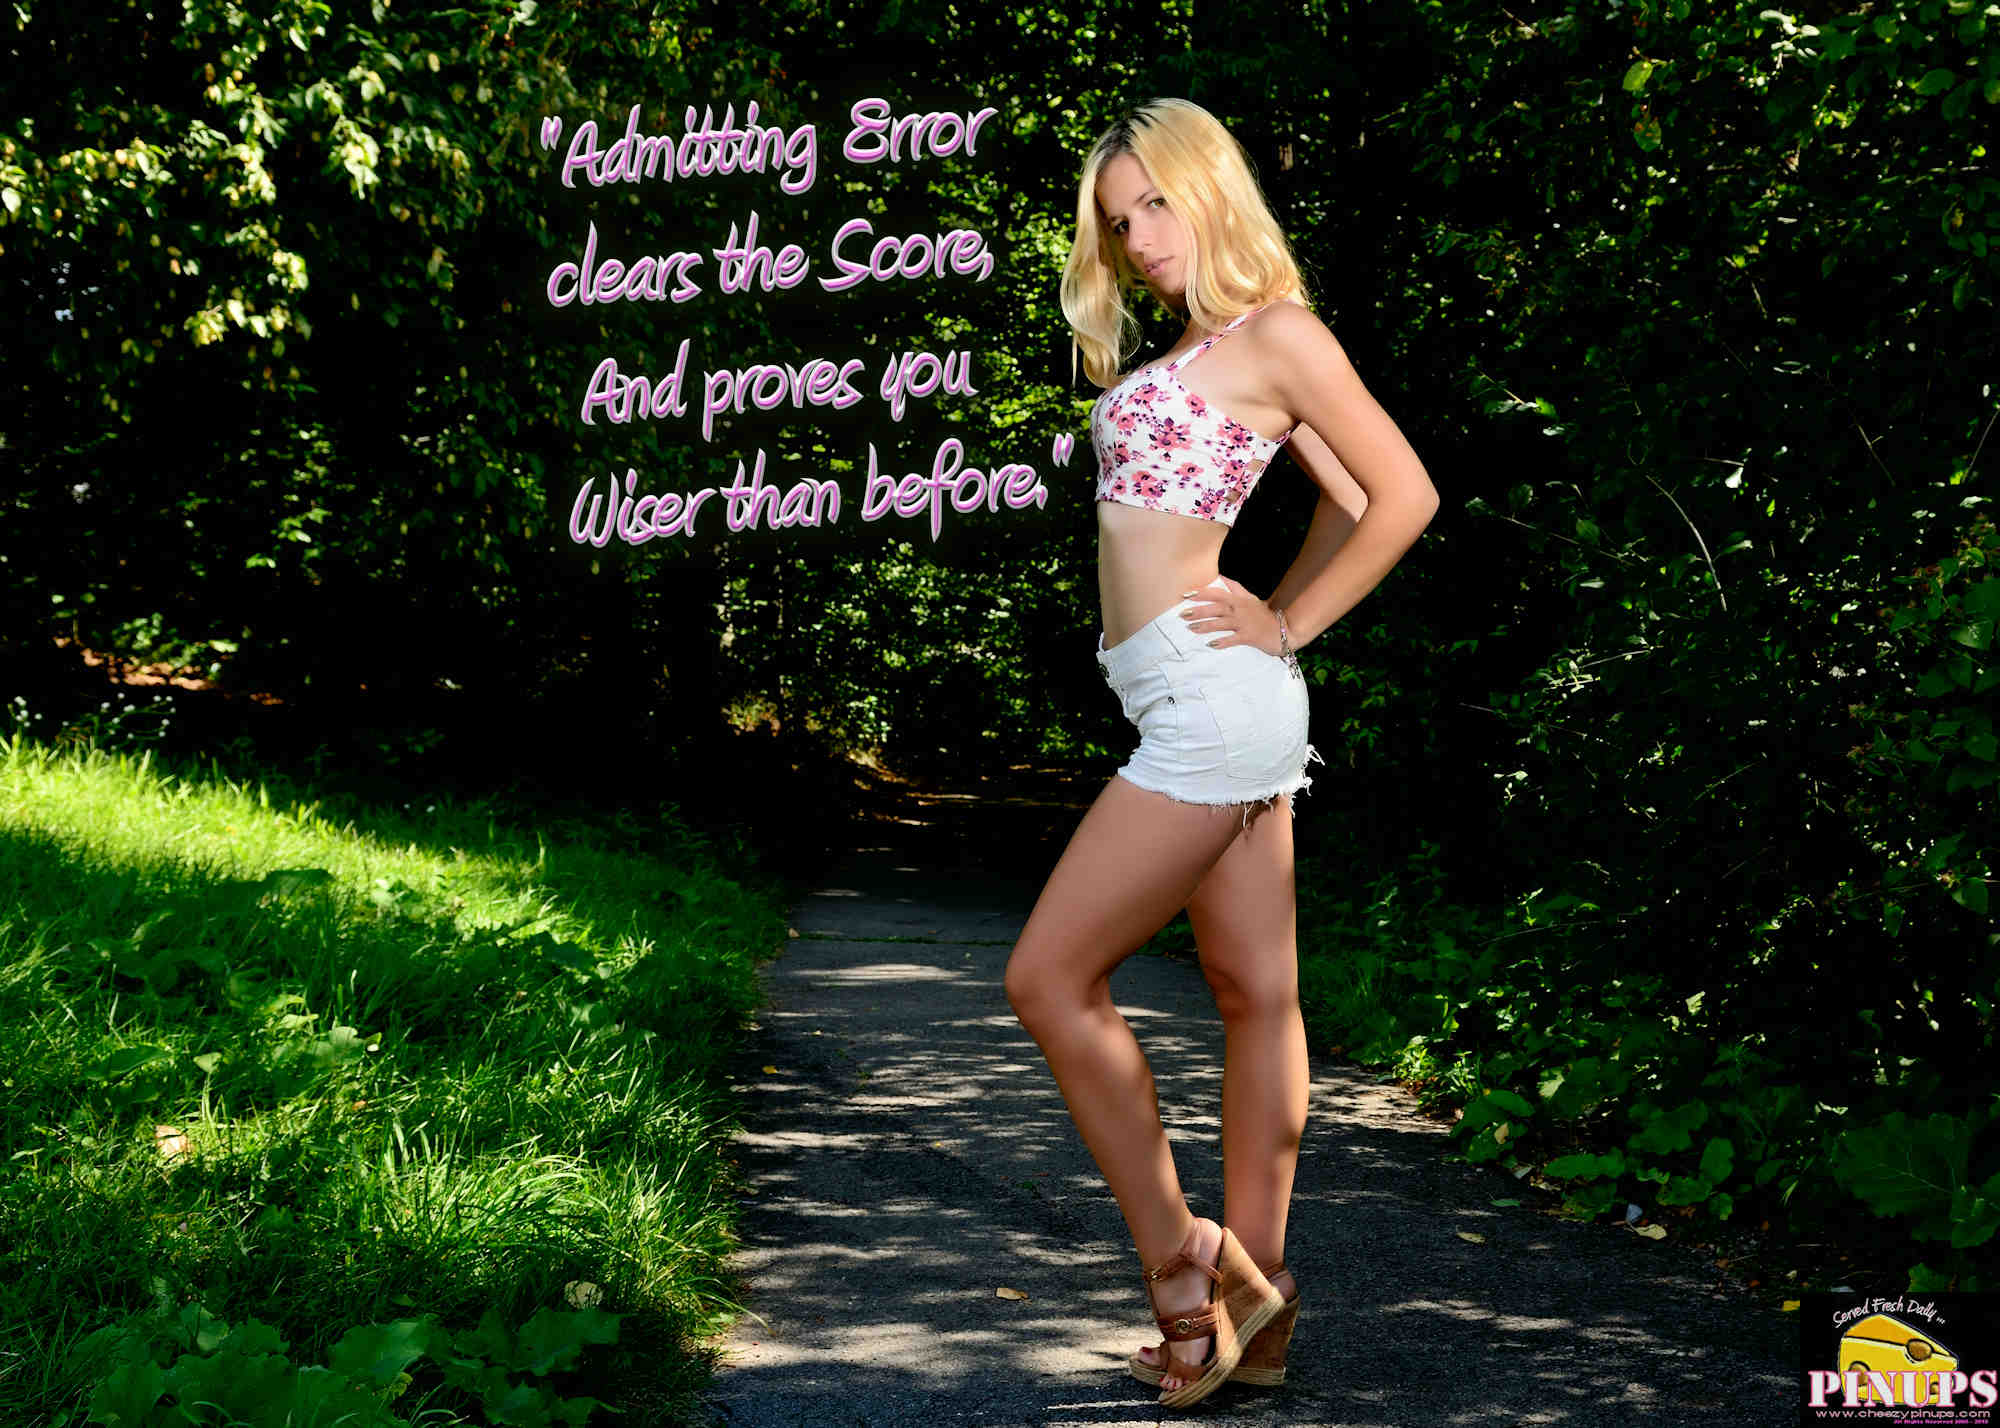 "Cheezy Pinup - November 20, 2018 ""Admitting Error clears the Score, And proves you Wiser than before."" - Arthur Guiterman Model: Cristiana"